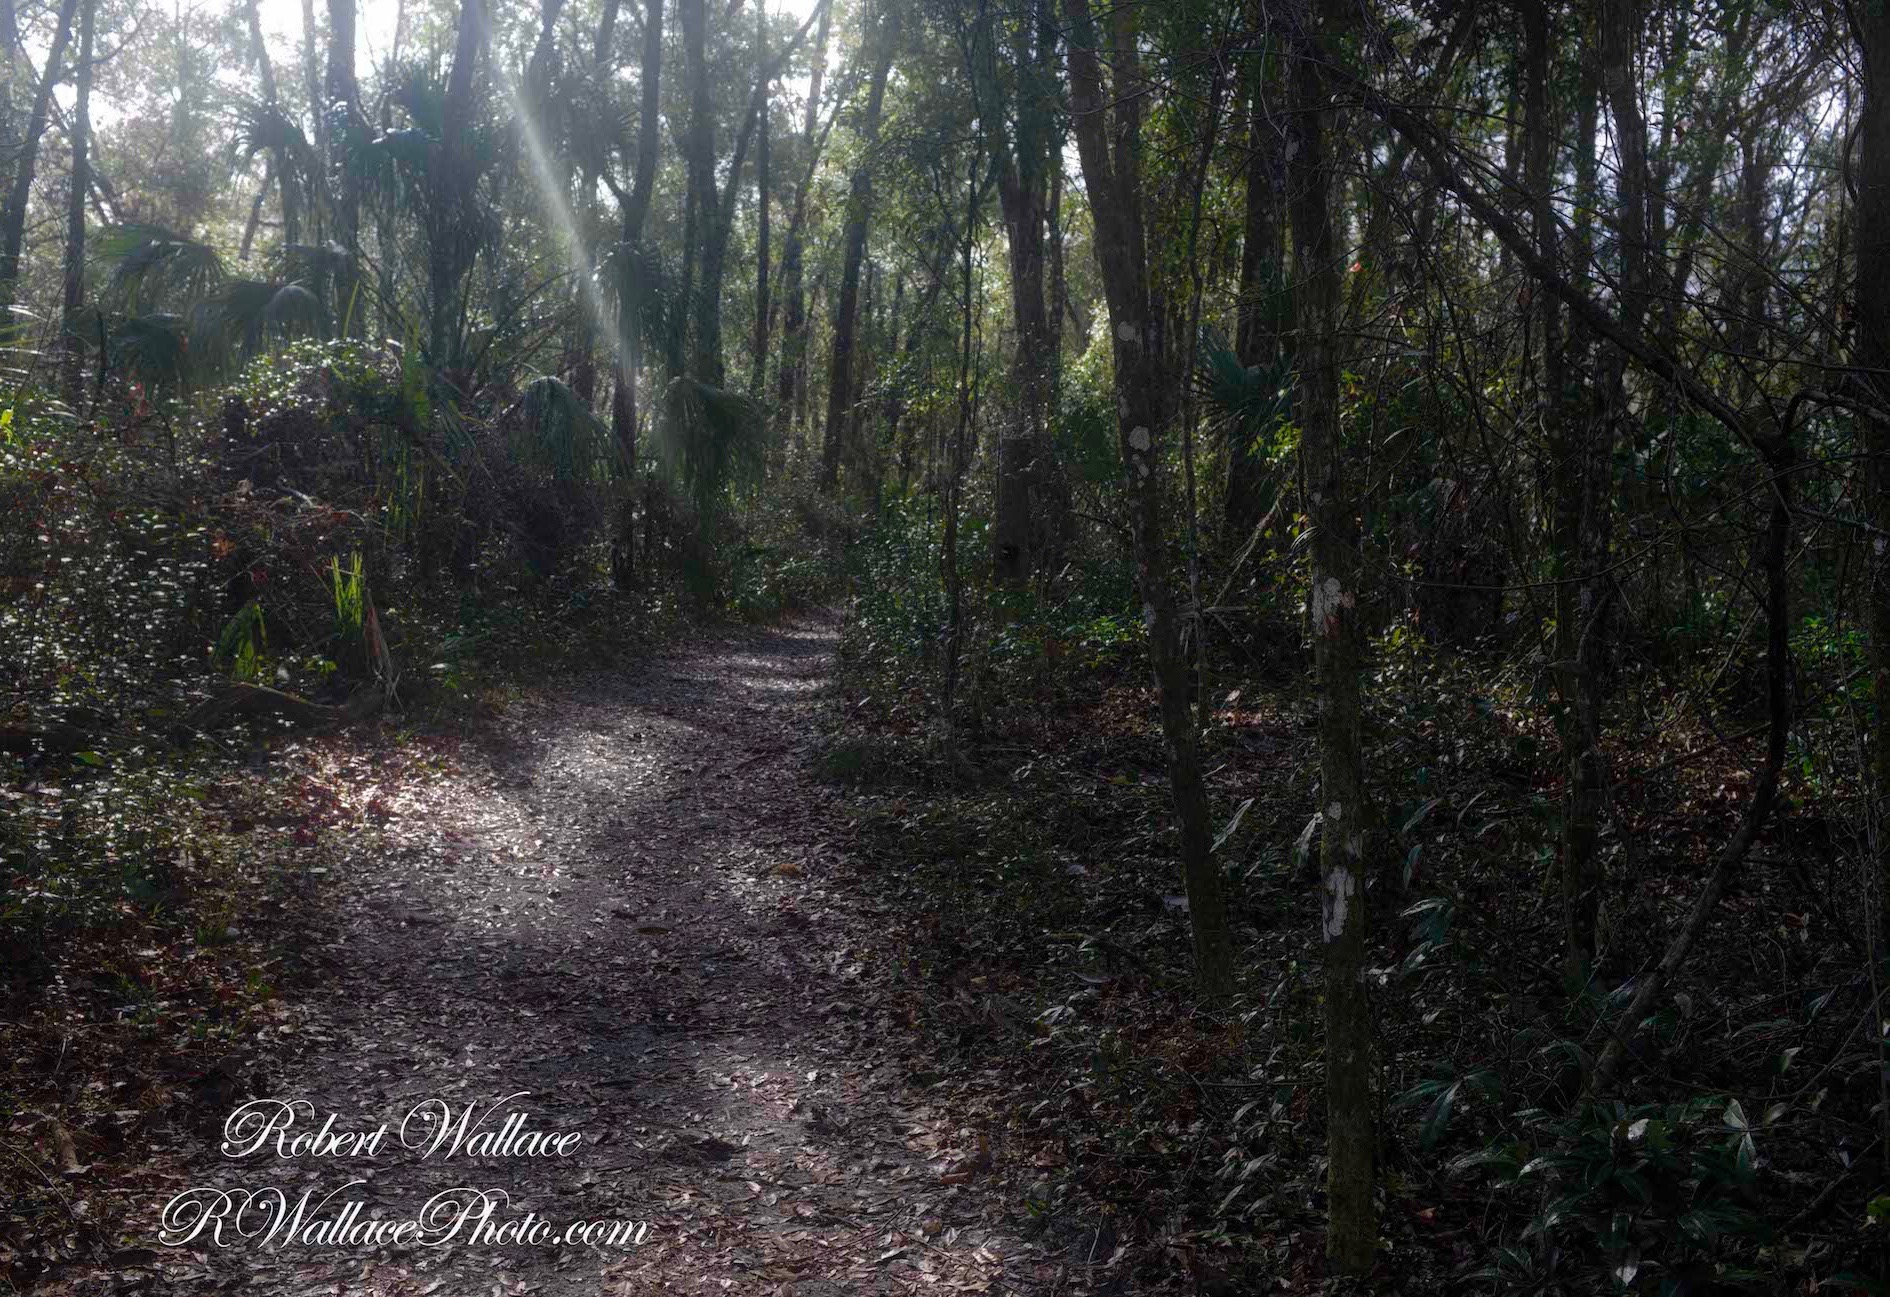 THE PAVED PATH ENDS WHERE THE FOREST BEGINS. IMAGE: ROBERT WALLACE, RWALLACE PHOTO